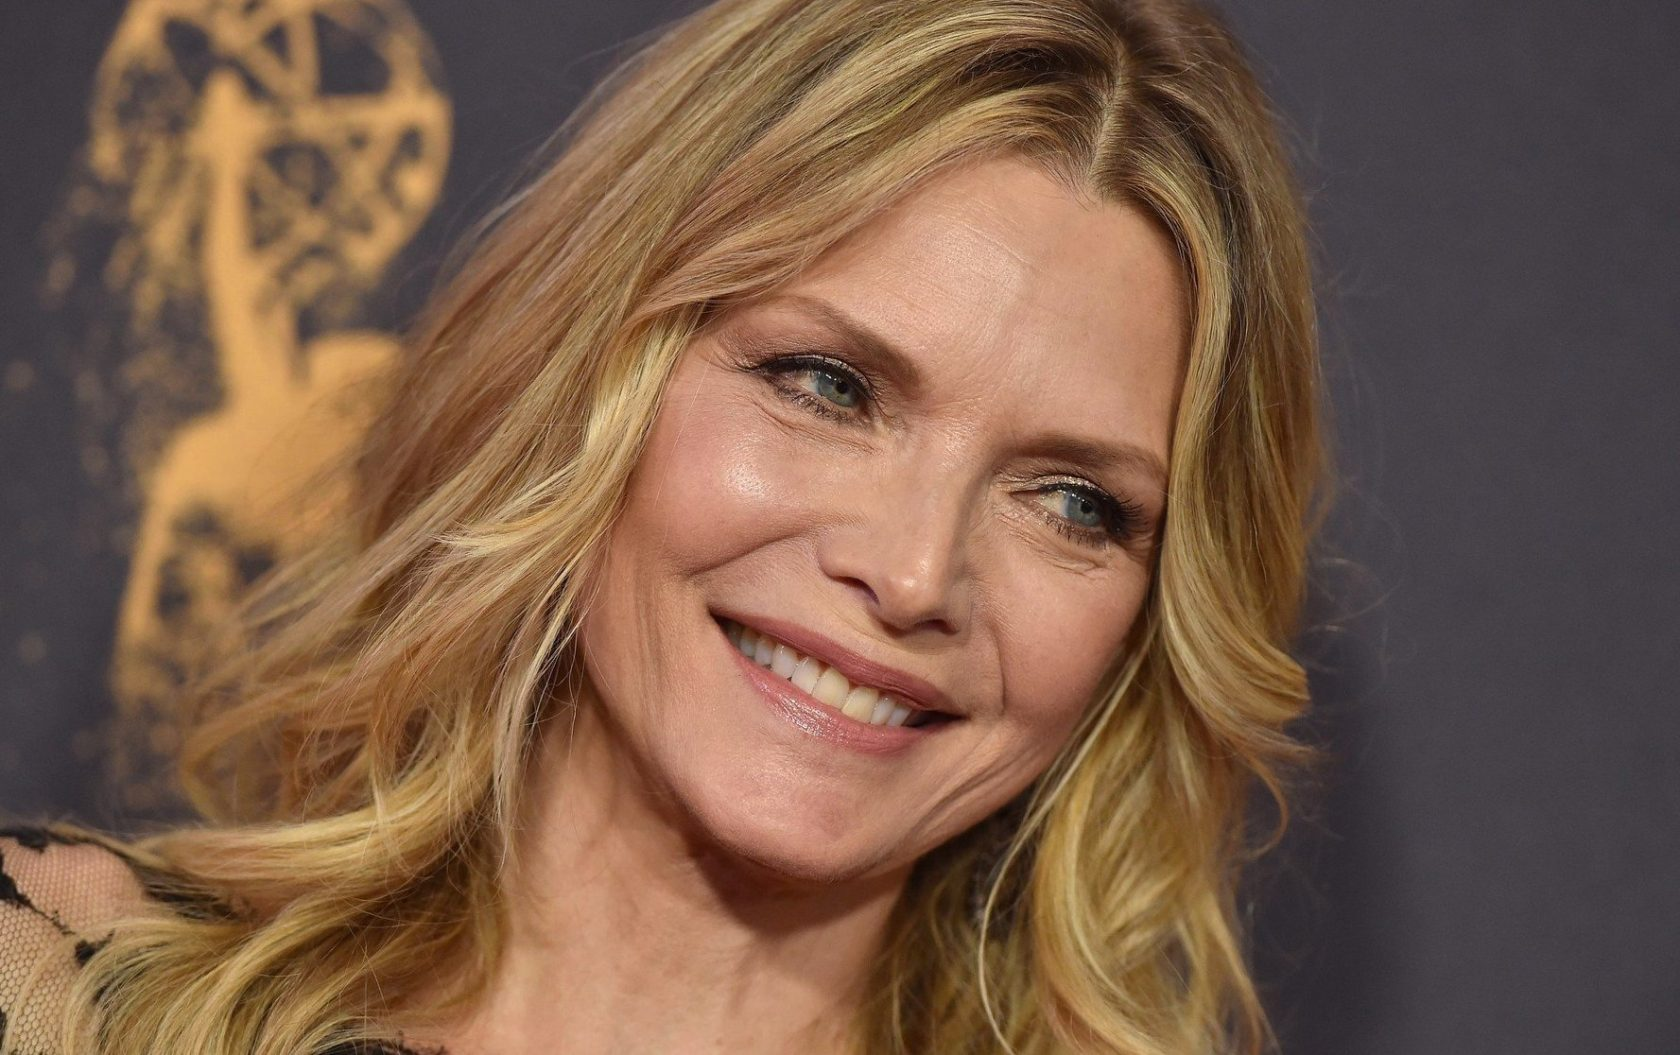 9th Annual Primetime Emmy Awards. Microsoft Theater, Los Angeles, California. Pictured: Michelle Pfeiffer. EVENT September 17, 2017 Job: 170917A1, Image: 349745361, License: Rights-managed, Restrictions: 000, Model Release: no, Credit line: Profimedia, Bauer Griffin